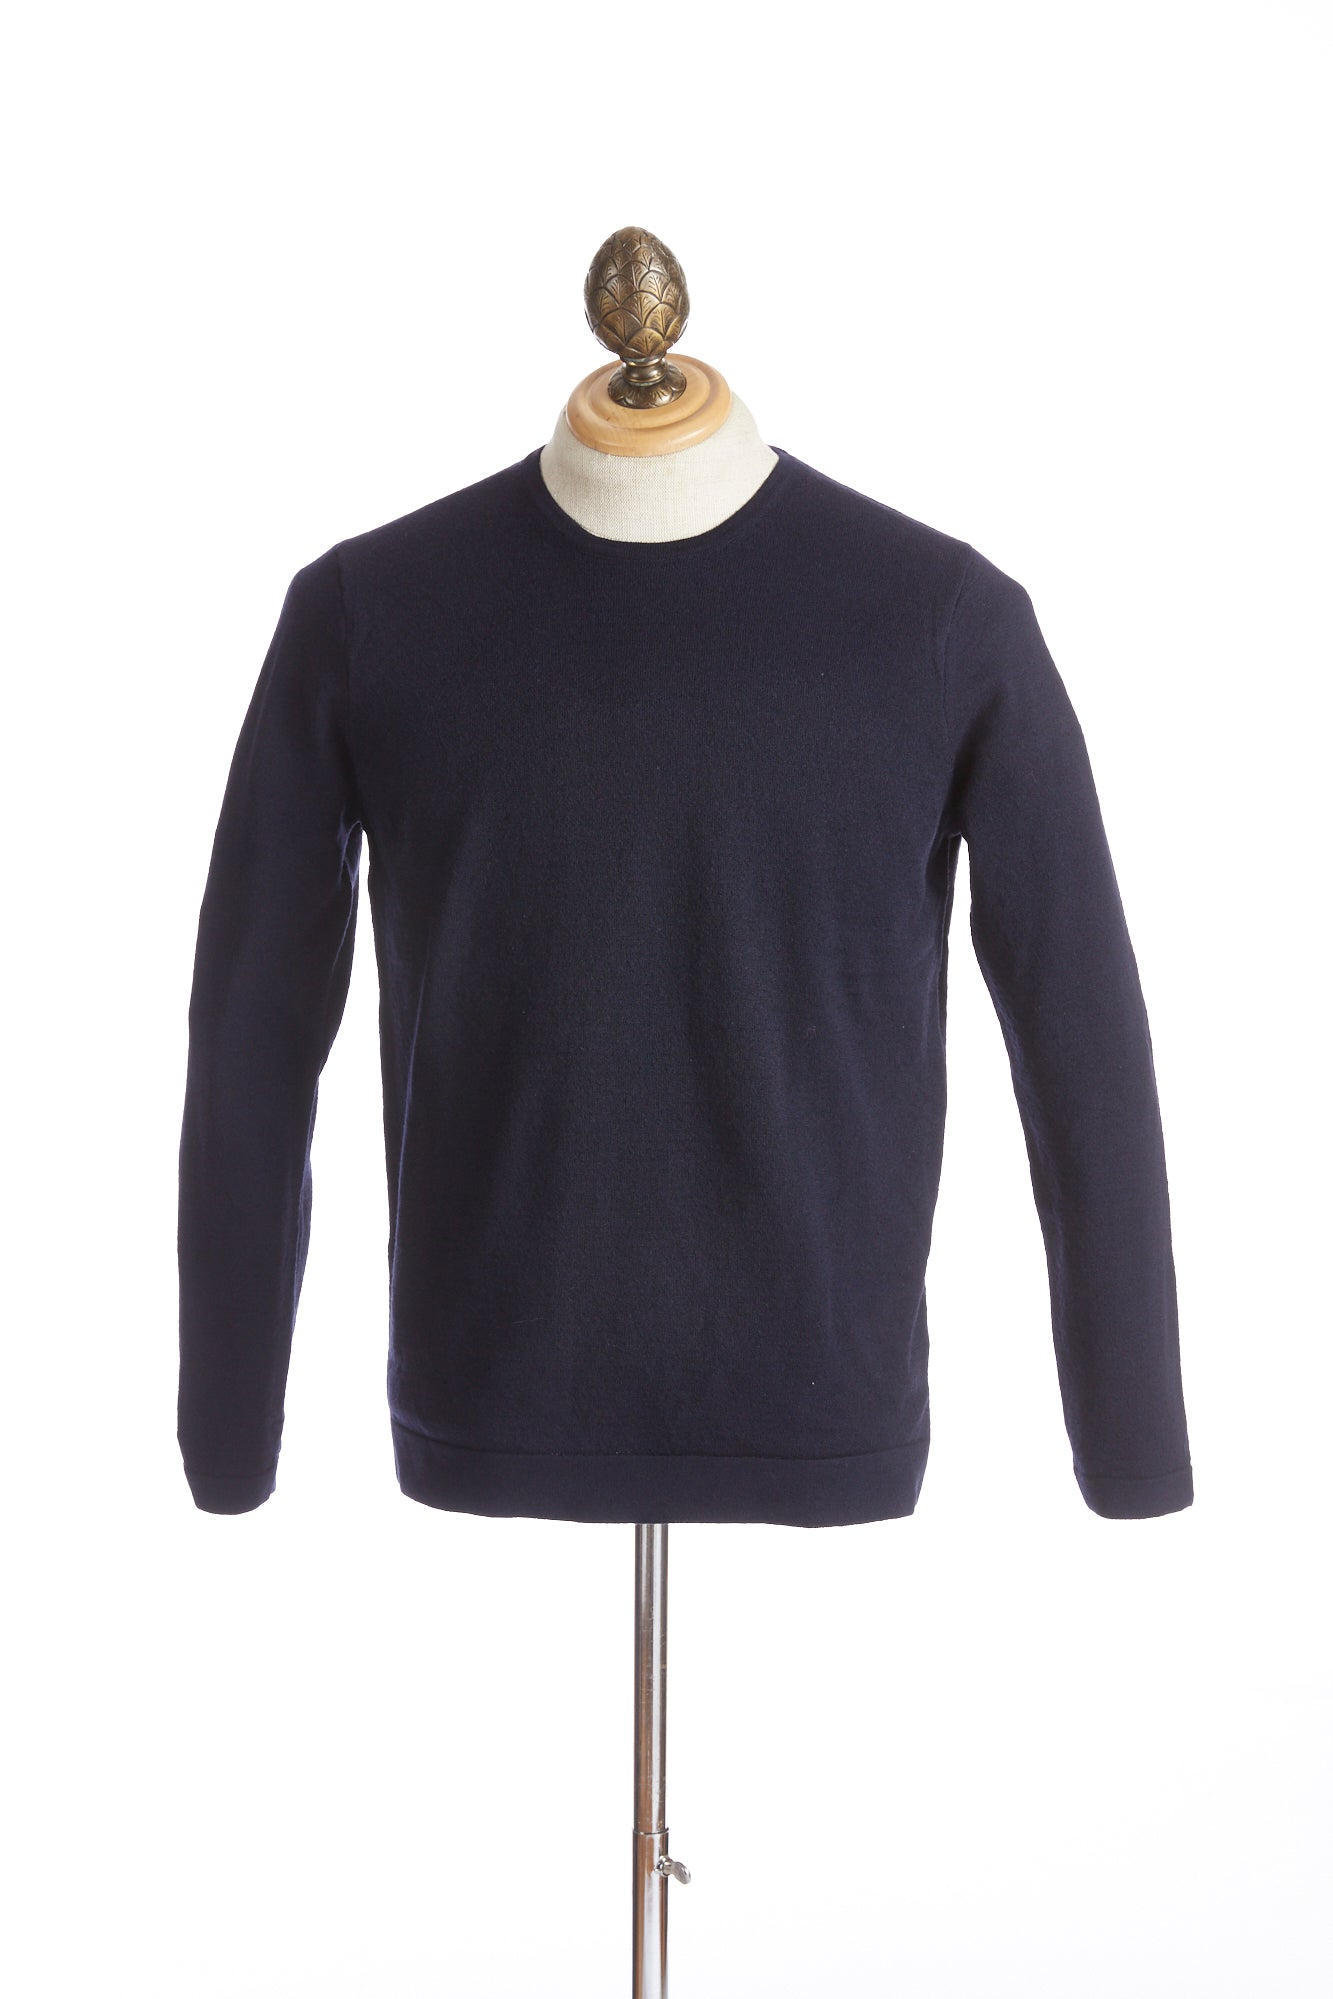 Phil Petter Navy Wool Crewneck Sweater